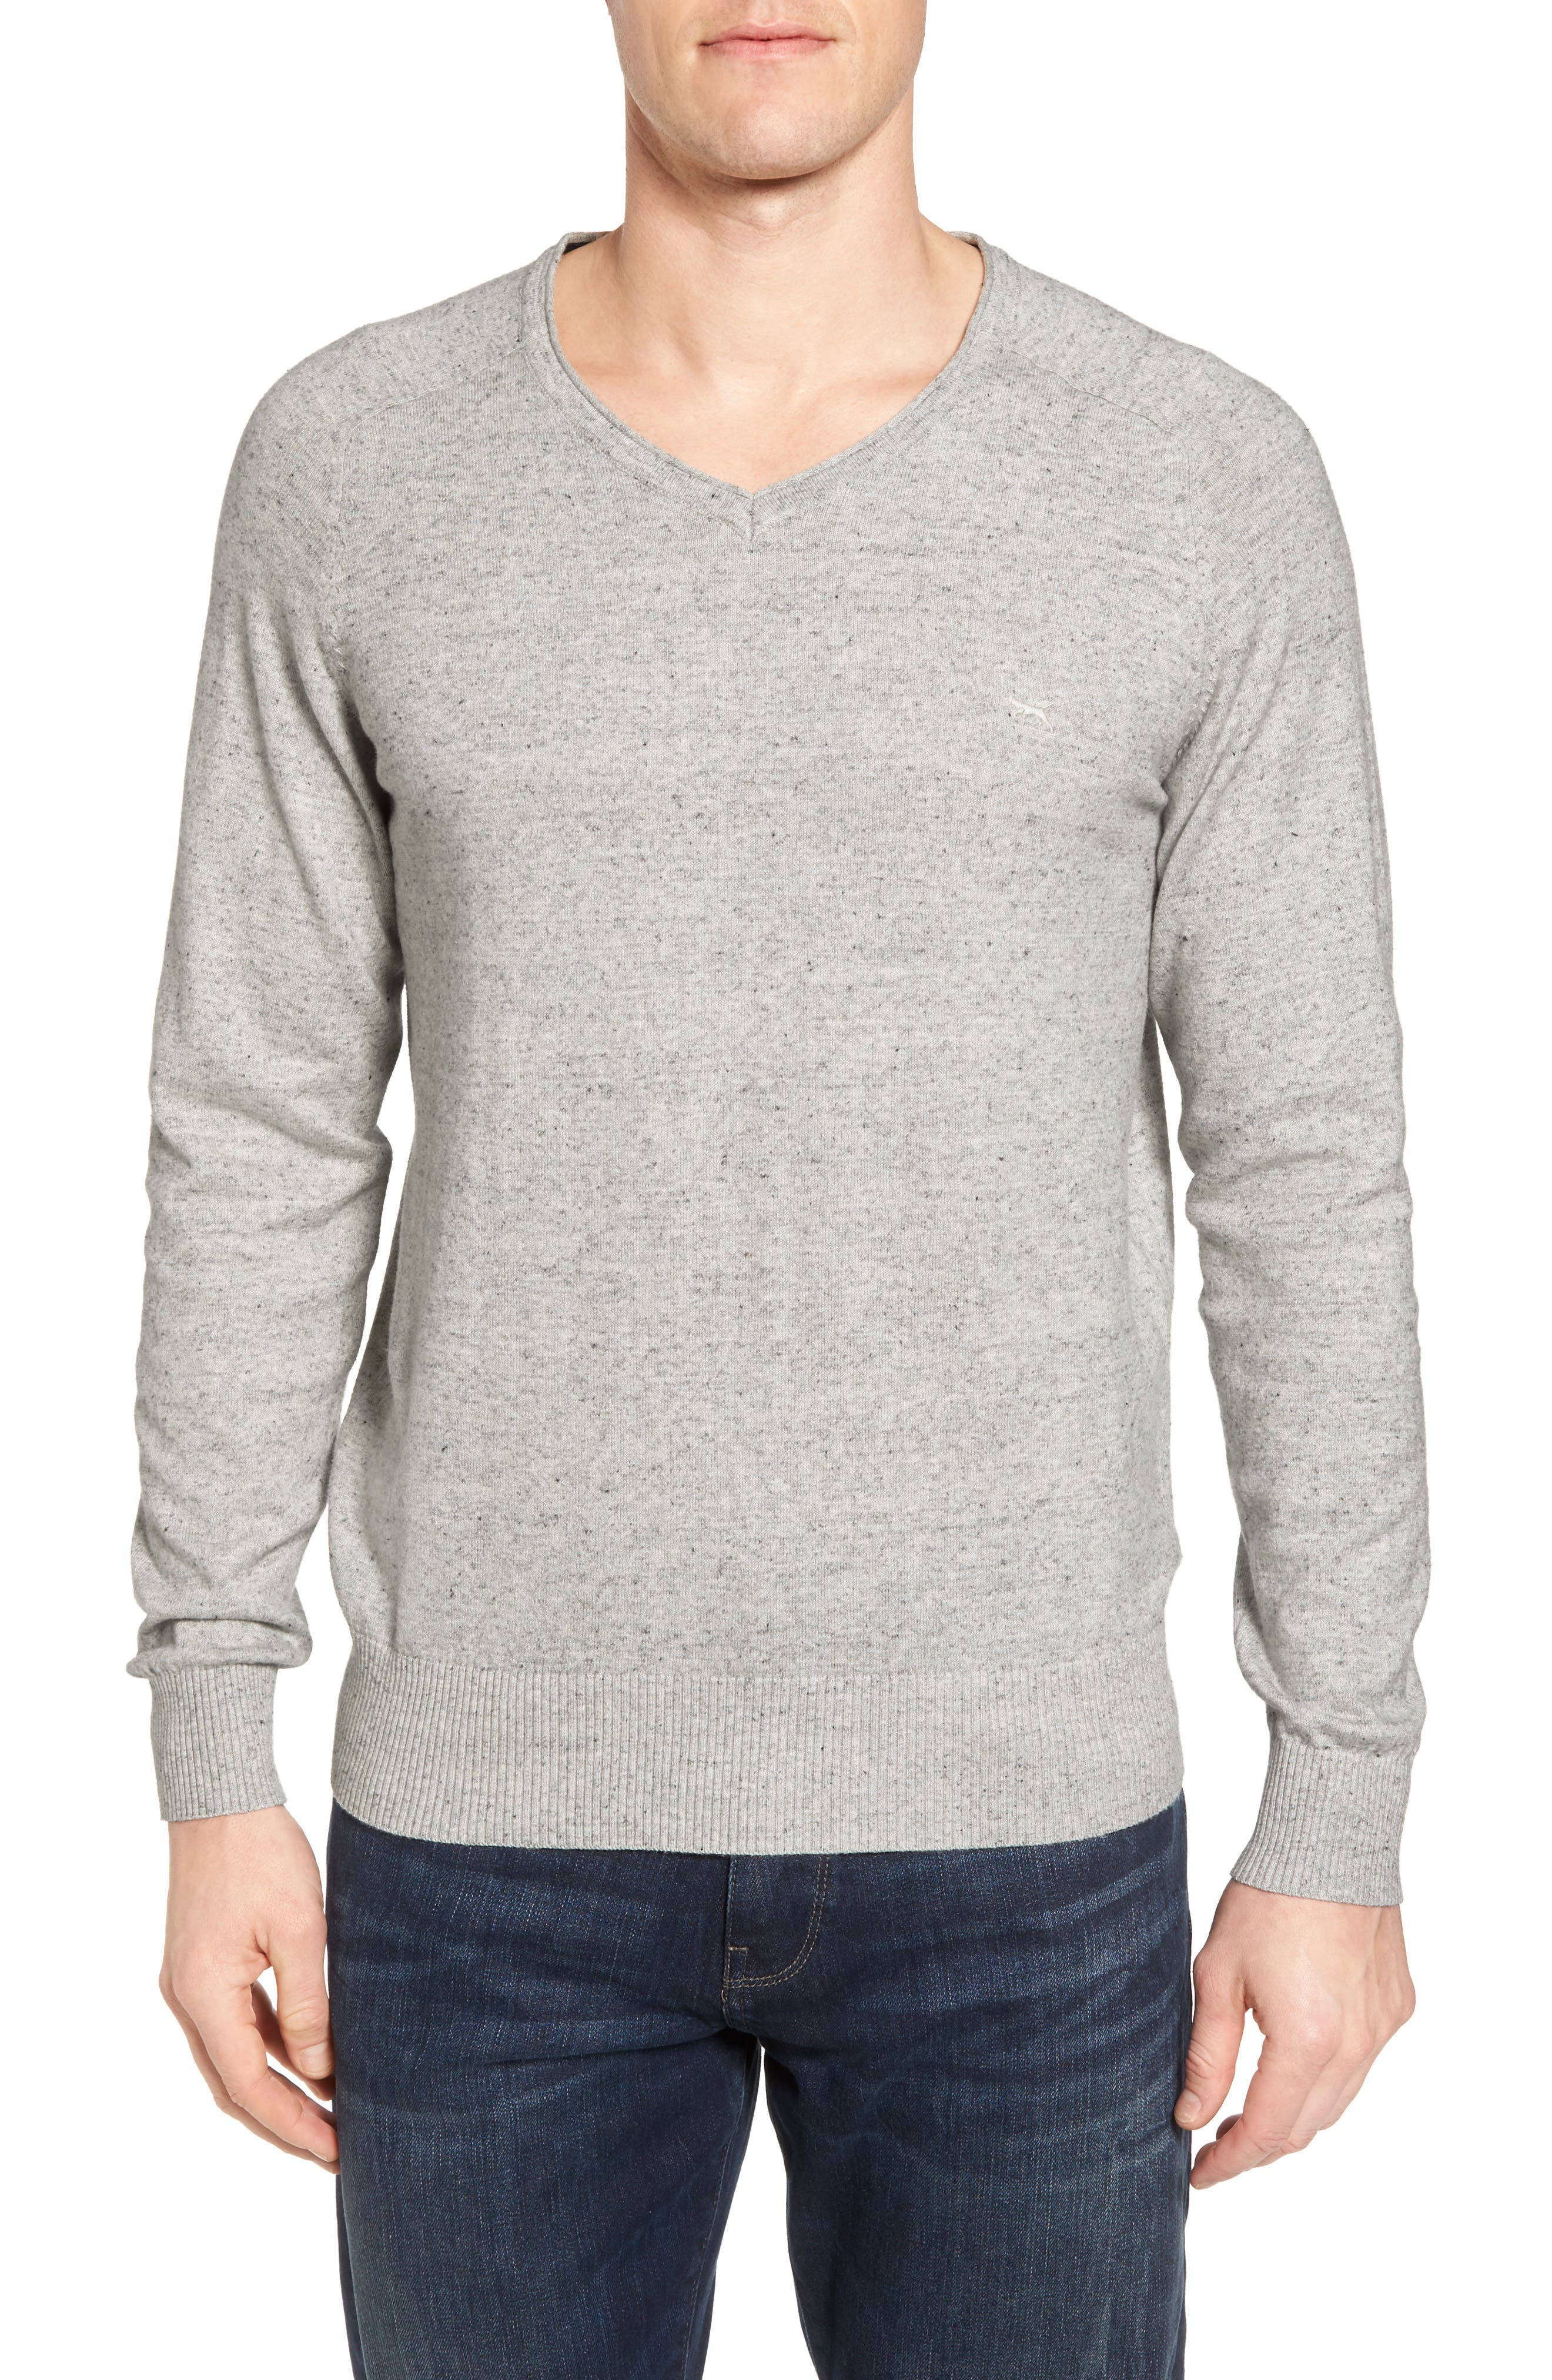 Arbors Cotton V-Neck Sweater,                             Main thumbnail 1, color,                             261